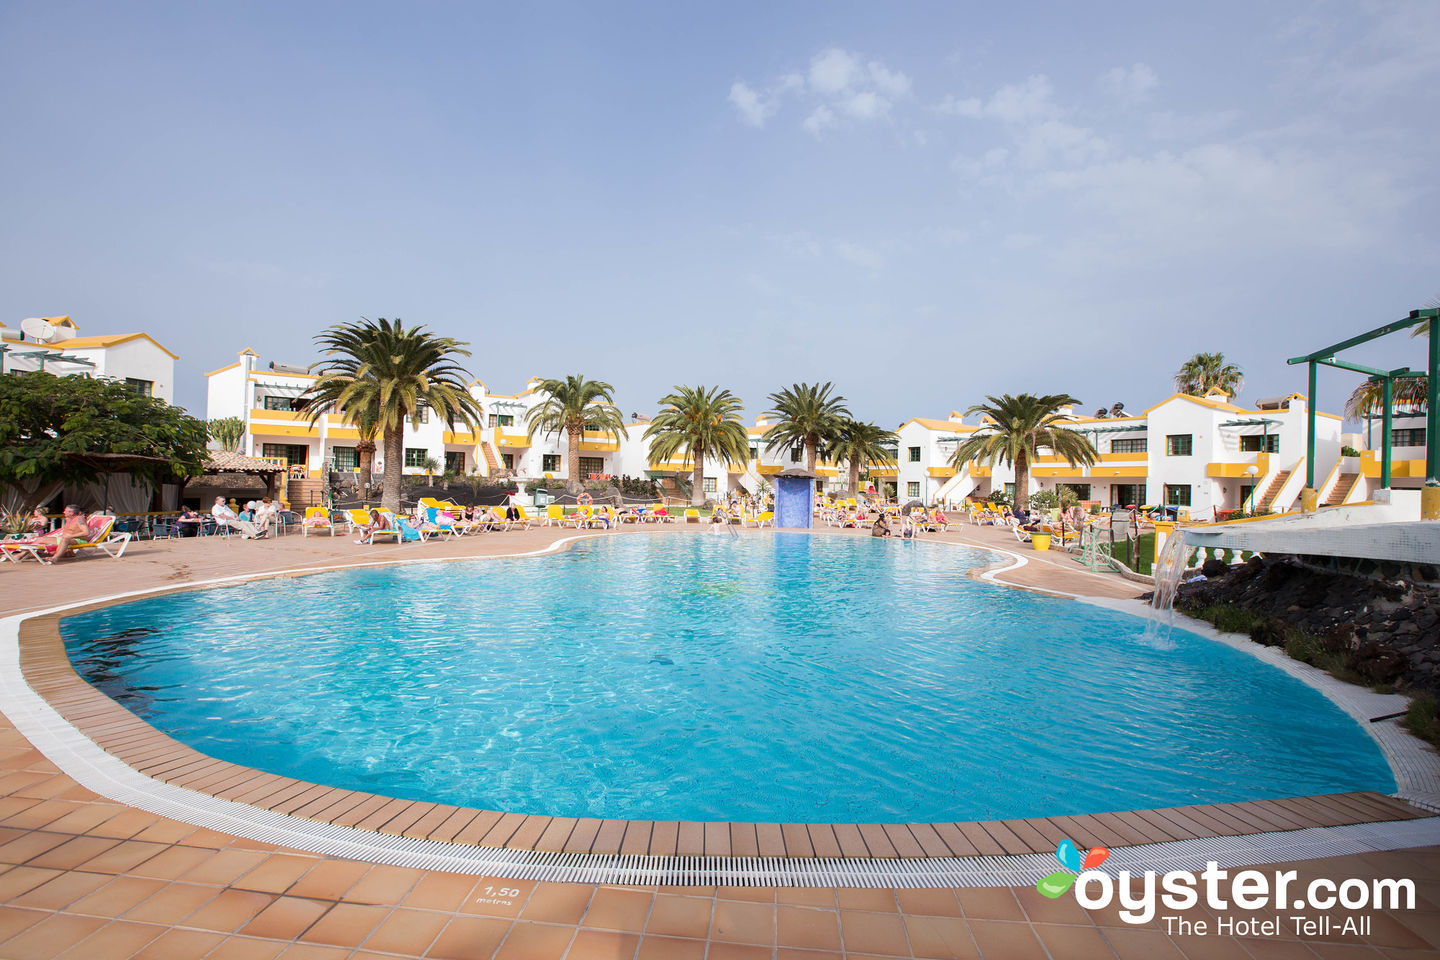 The Best AllInclusive Hotels in the Canary Islands